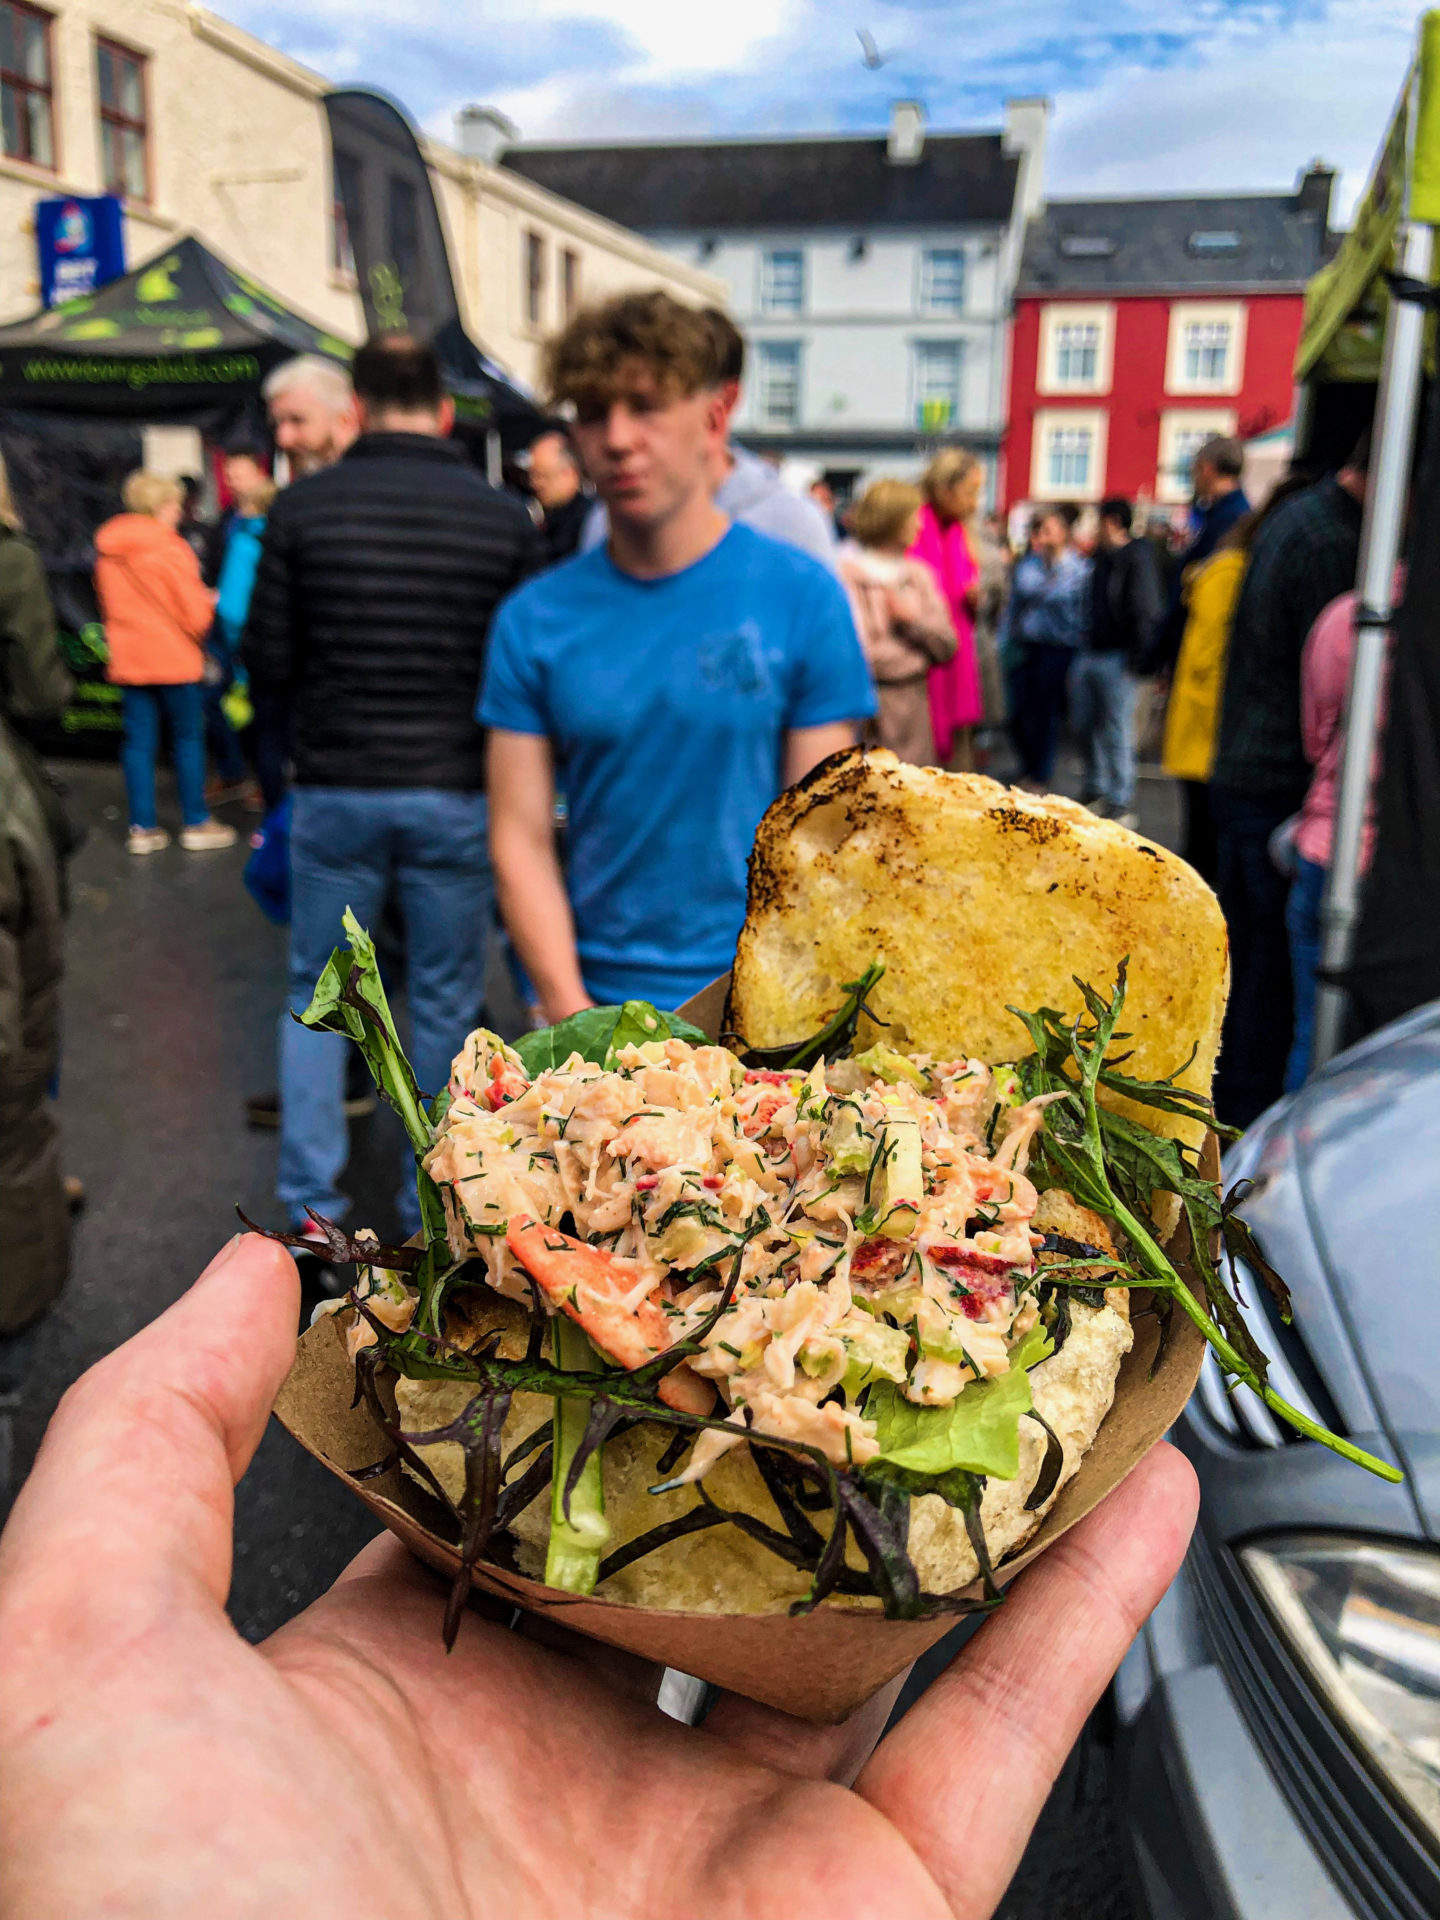 street food Ireland, food trucks ireland, ireland food, Irish food, julia hemingway, Julia's Lobster Truck, julias lobster truck, places to eat in the burren, the burren food, food trucks irish festivals, top street food Ireland, top food trucks Ireland, Julia's Lobster Truck Clare, Julia's lobster pop-up